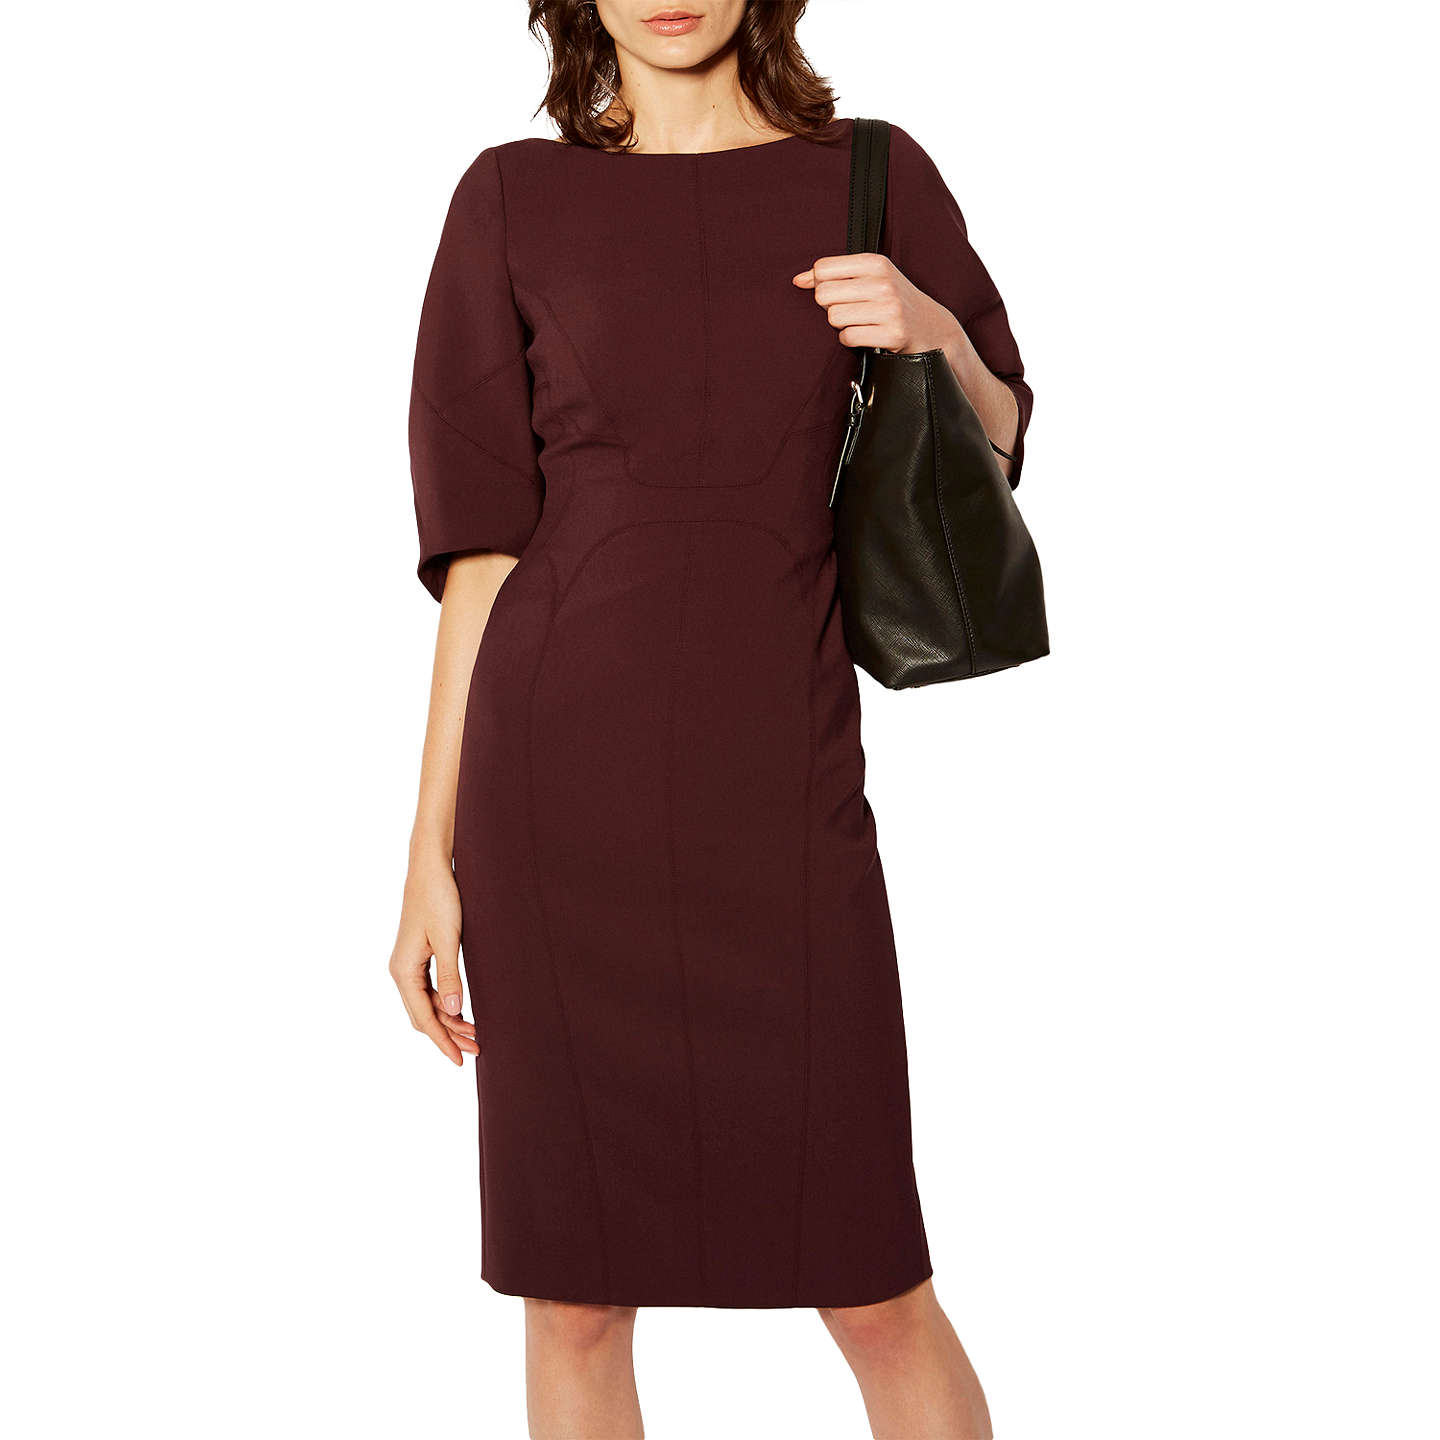 Karen Millen Sculptured Pencil Dress, Aubergine at John Lewis